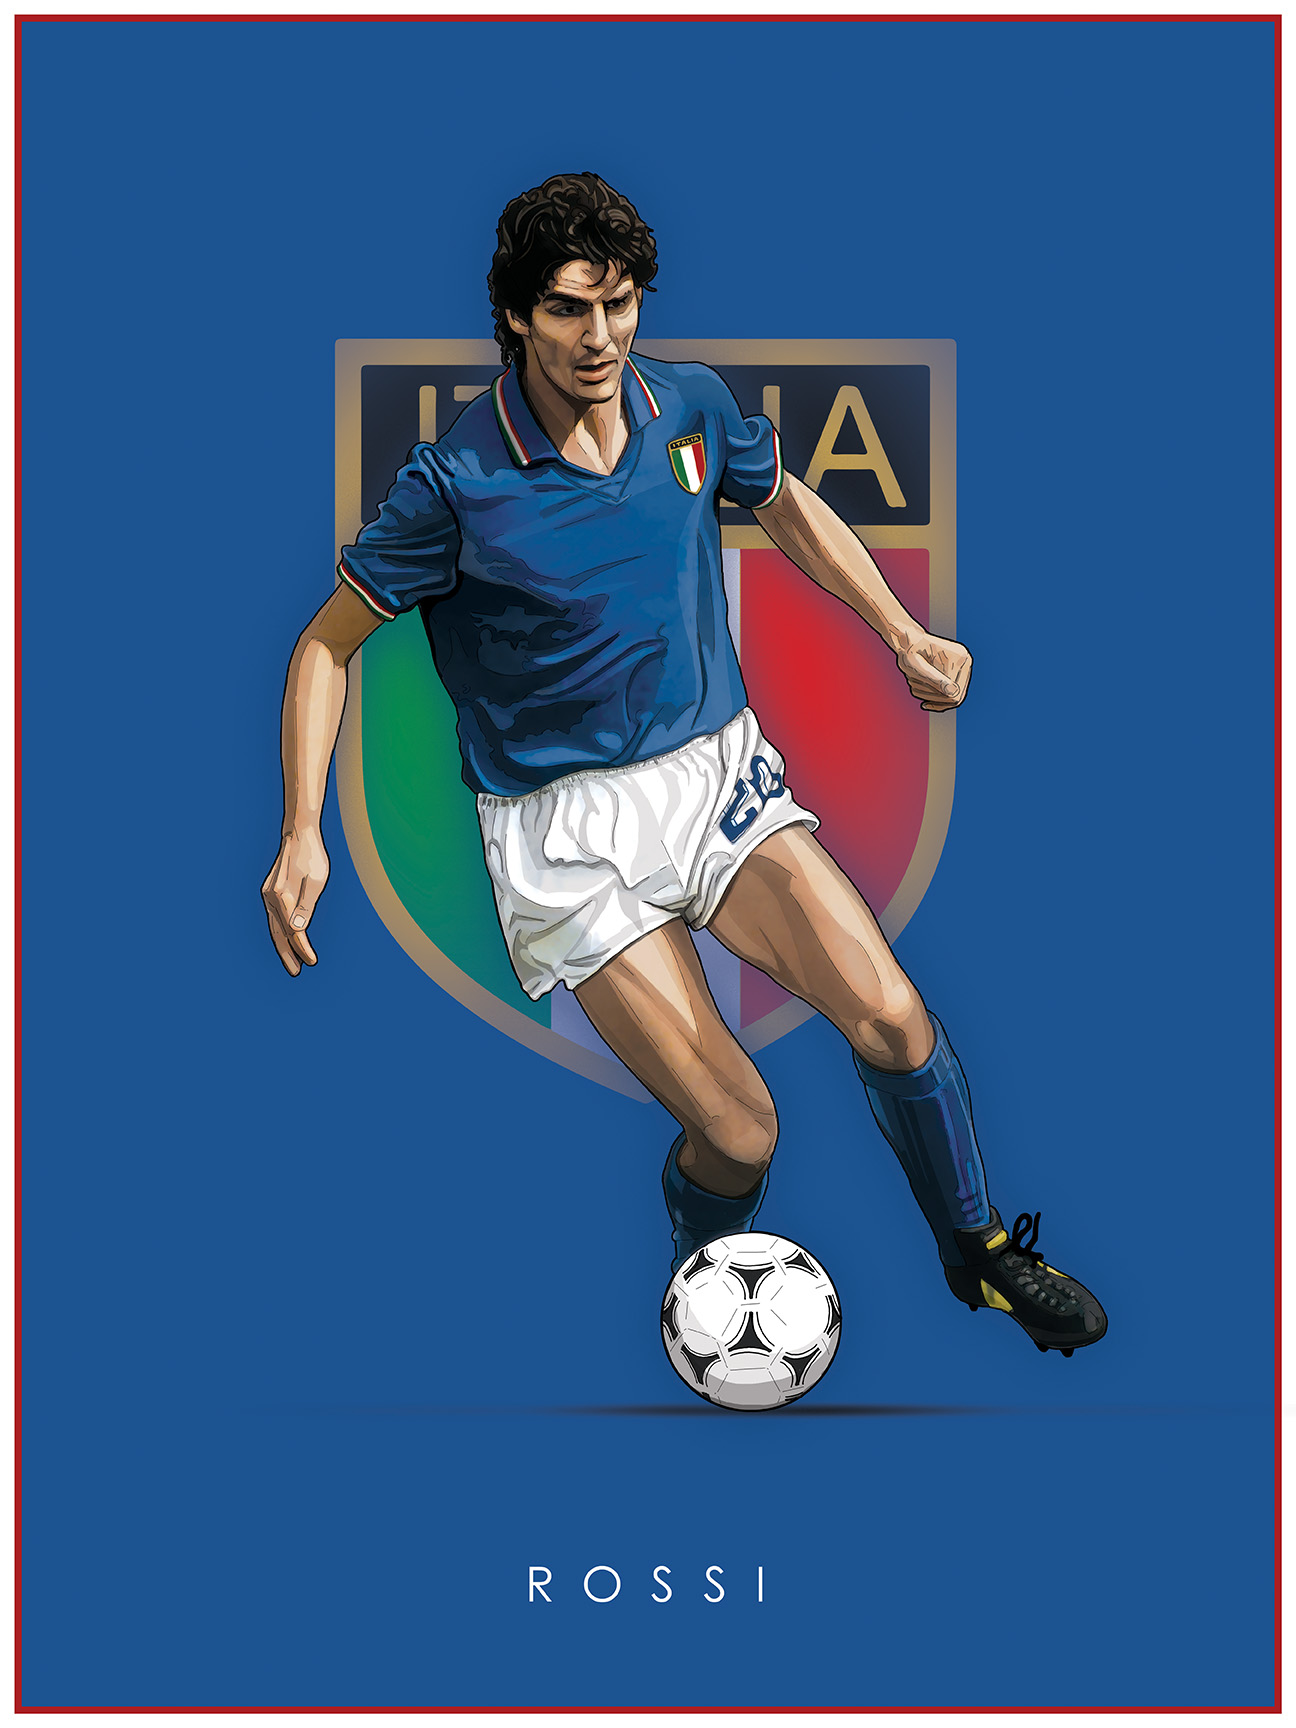 Legends of Football poster series